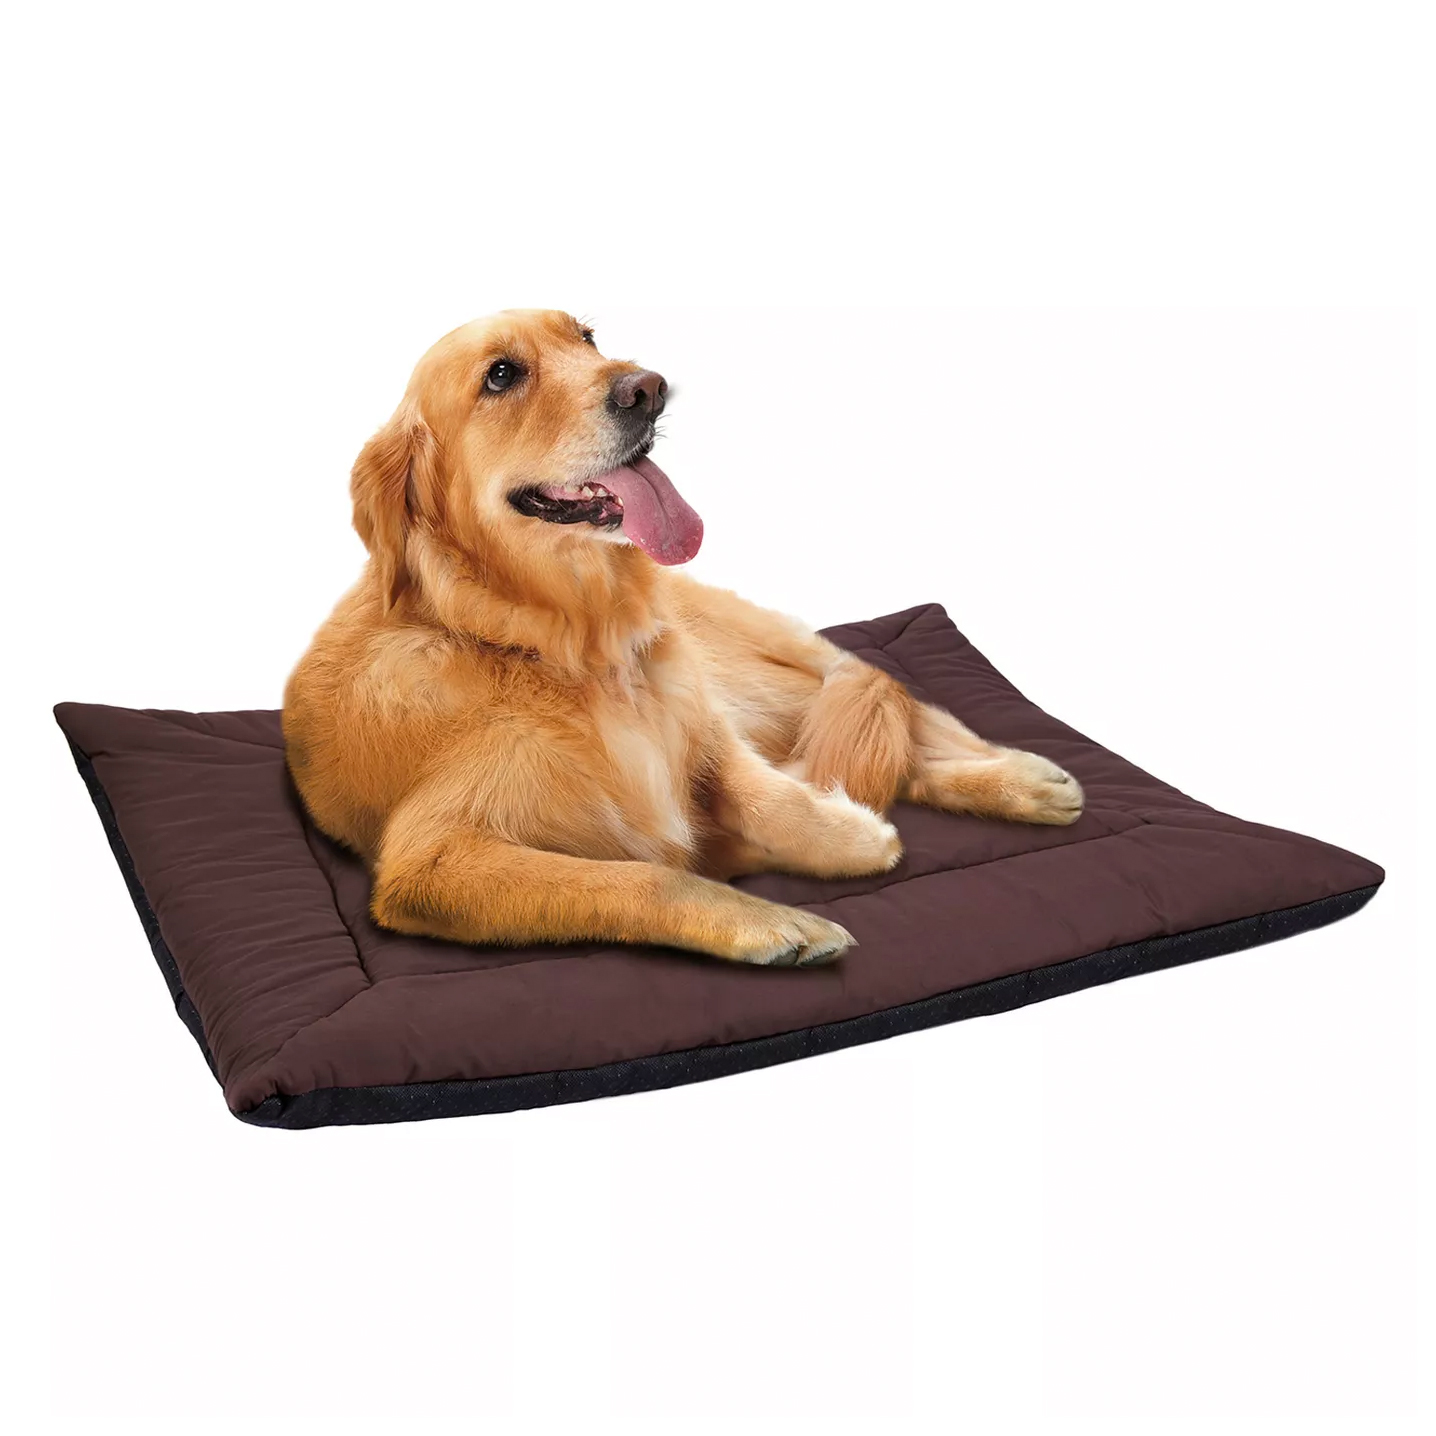 paws-and-pals-self-warming-pet-bed